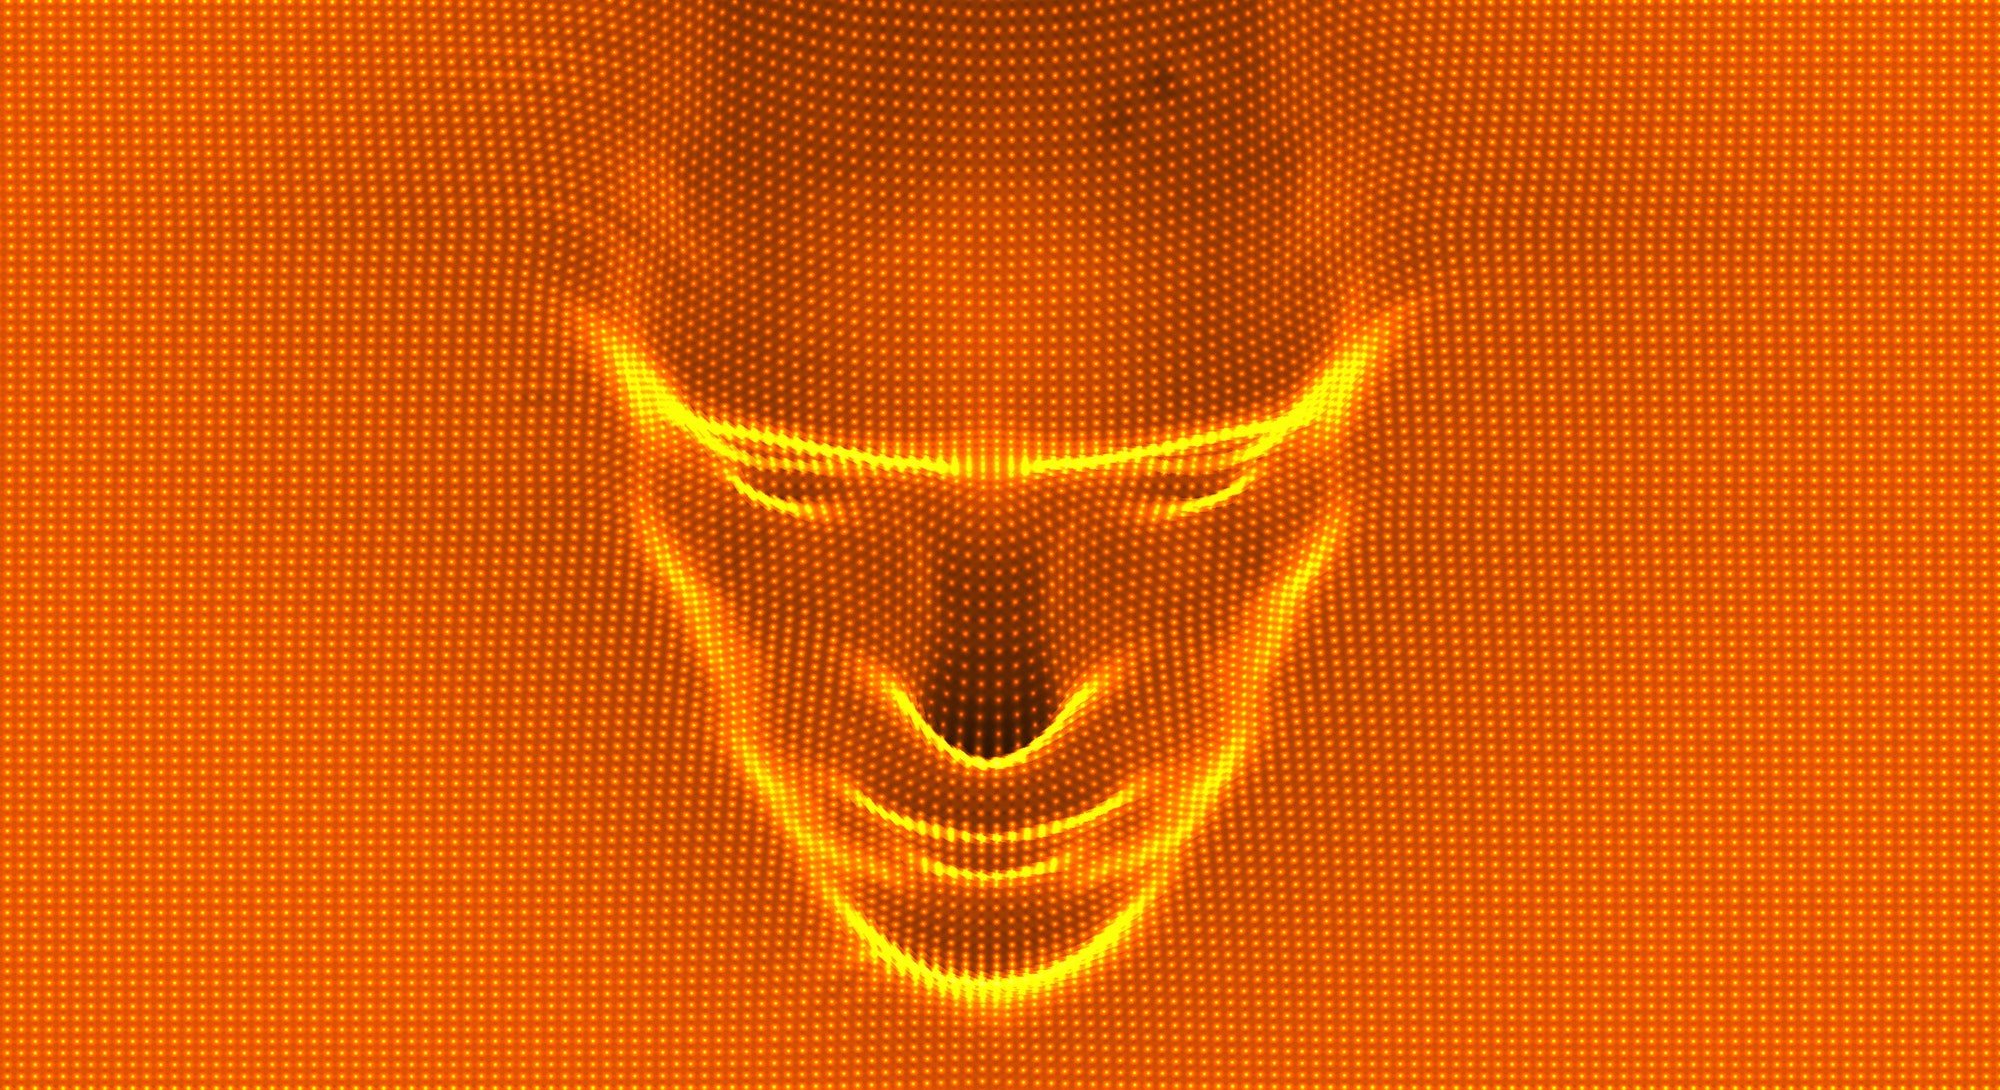 3D human face extruded from dotted pattern. Technology and robotics concept. Anonymous social masking. Cyber crime and security vector illustration.